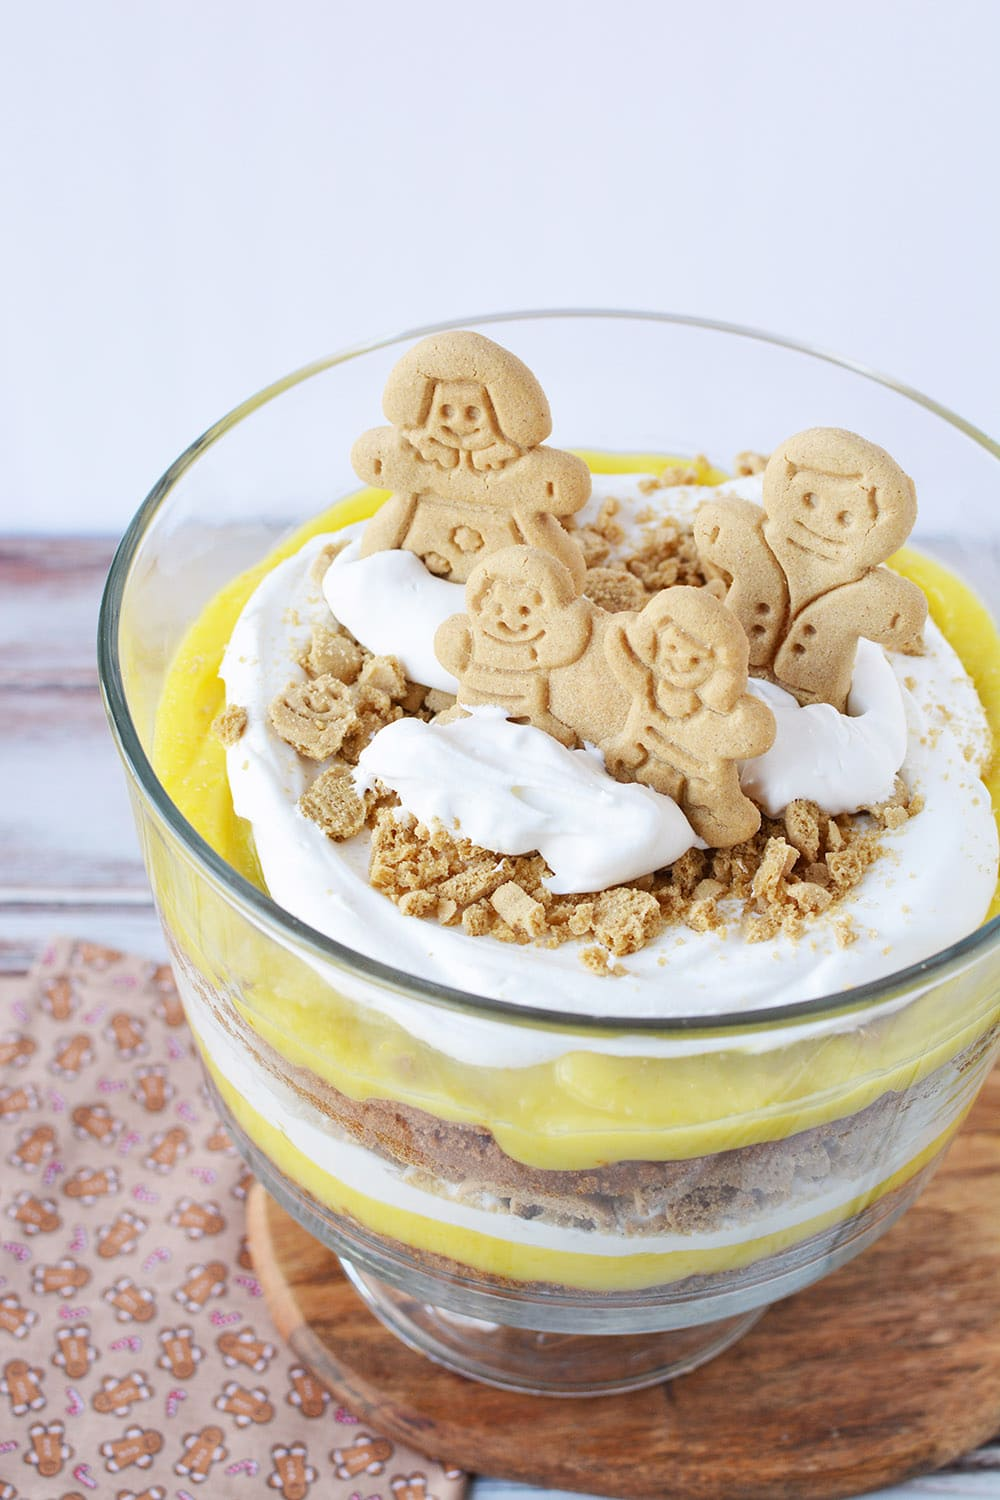 Gingerbread man trifle on a table